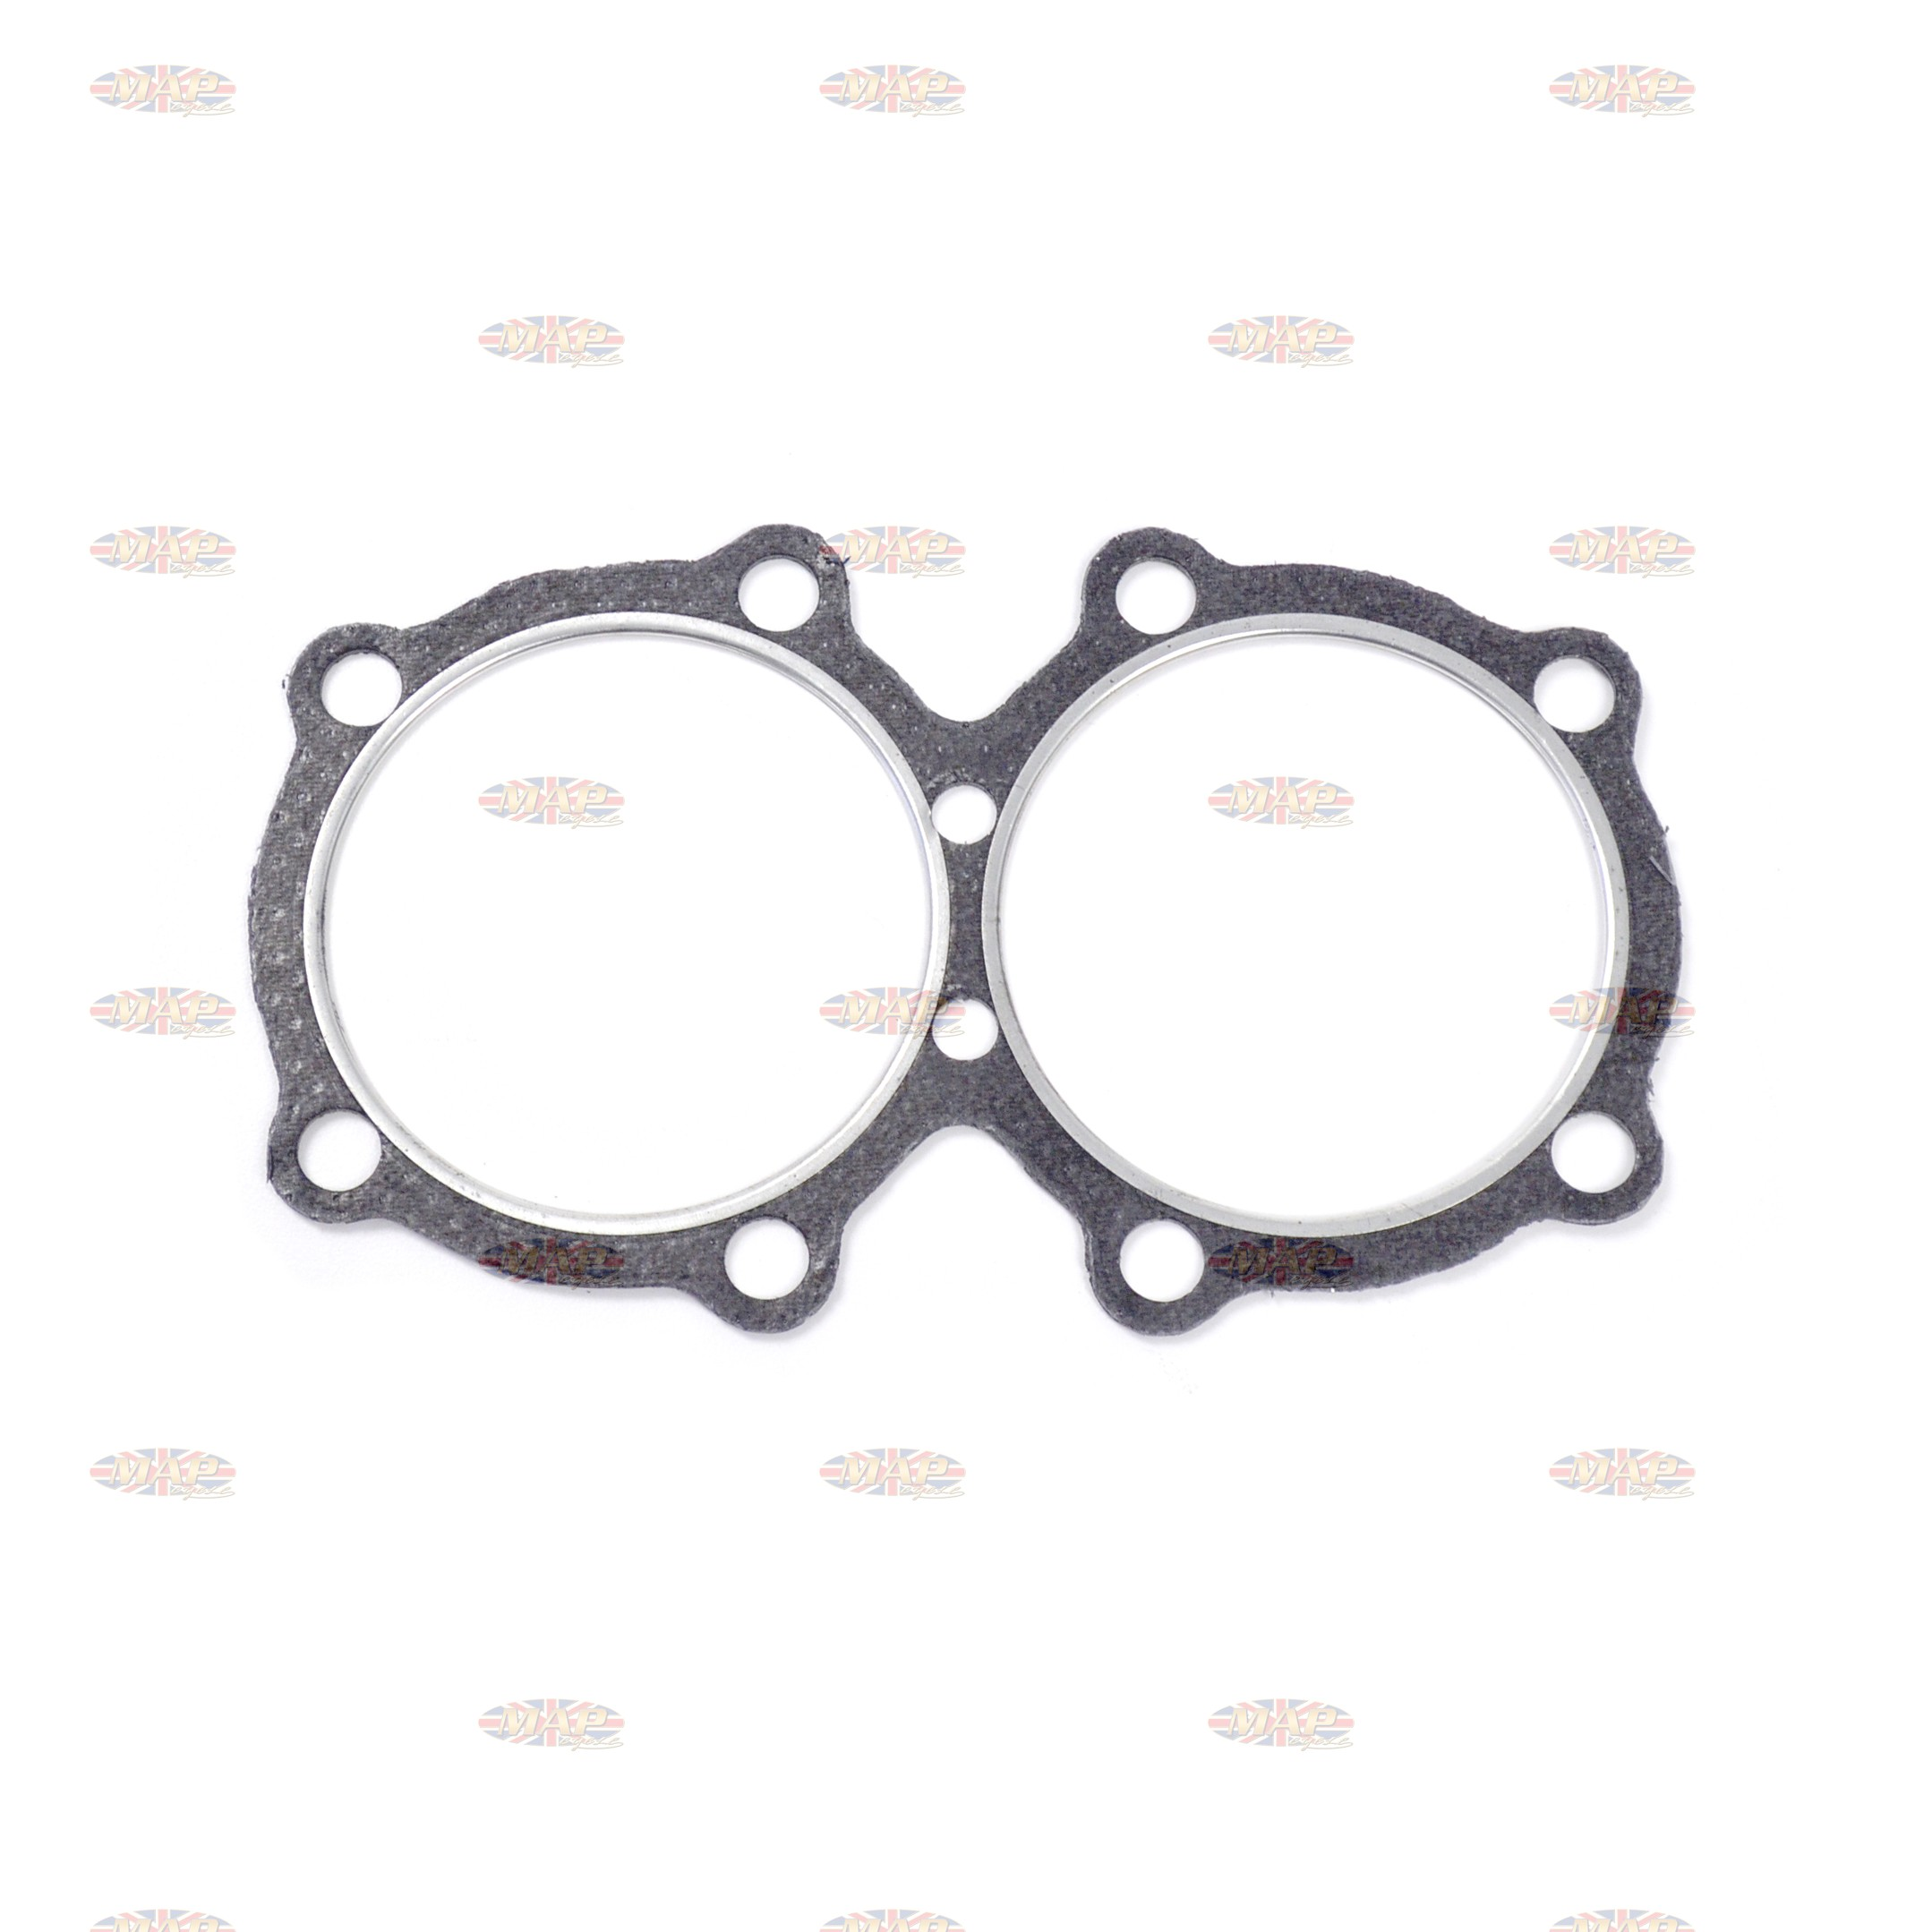 Triumph 750 Bonneville Tiger English-Made Top Quality Head Gasket 71-4619